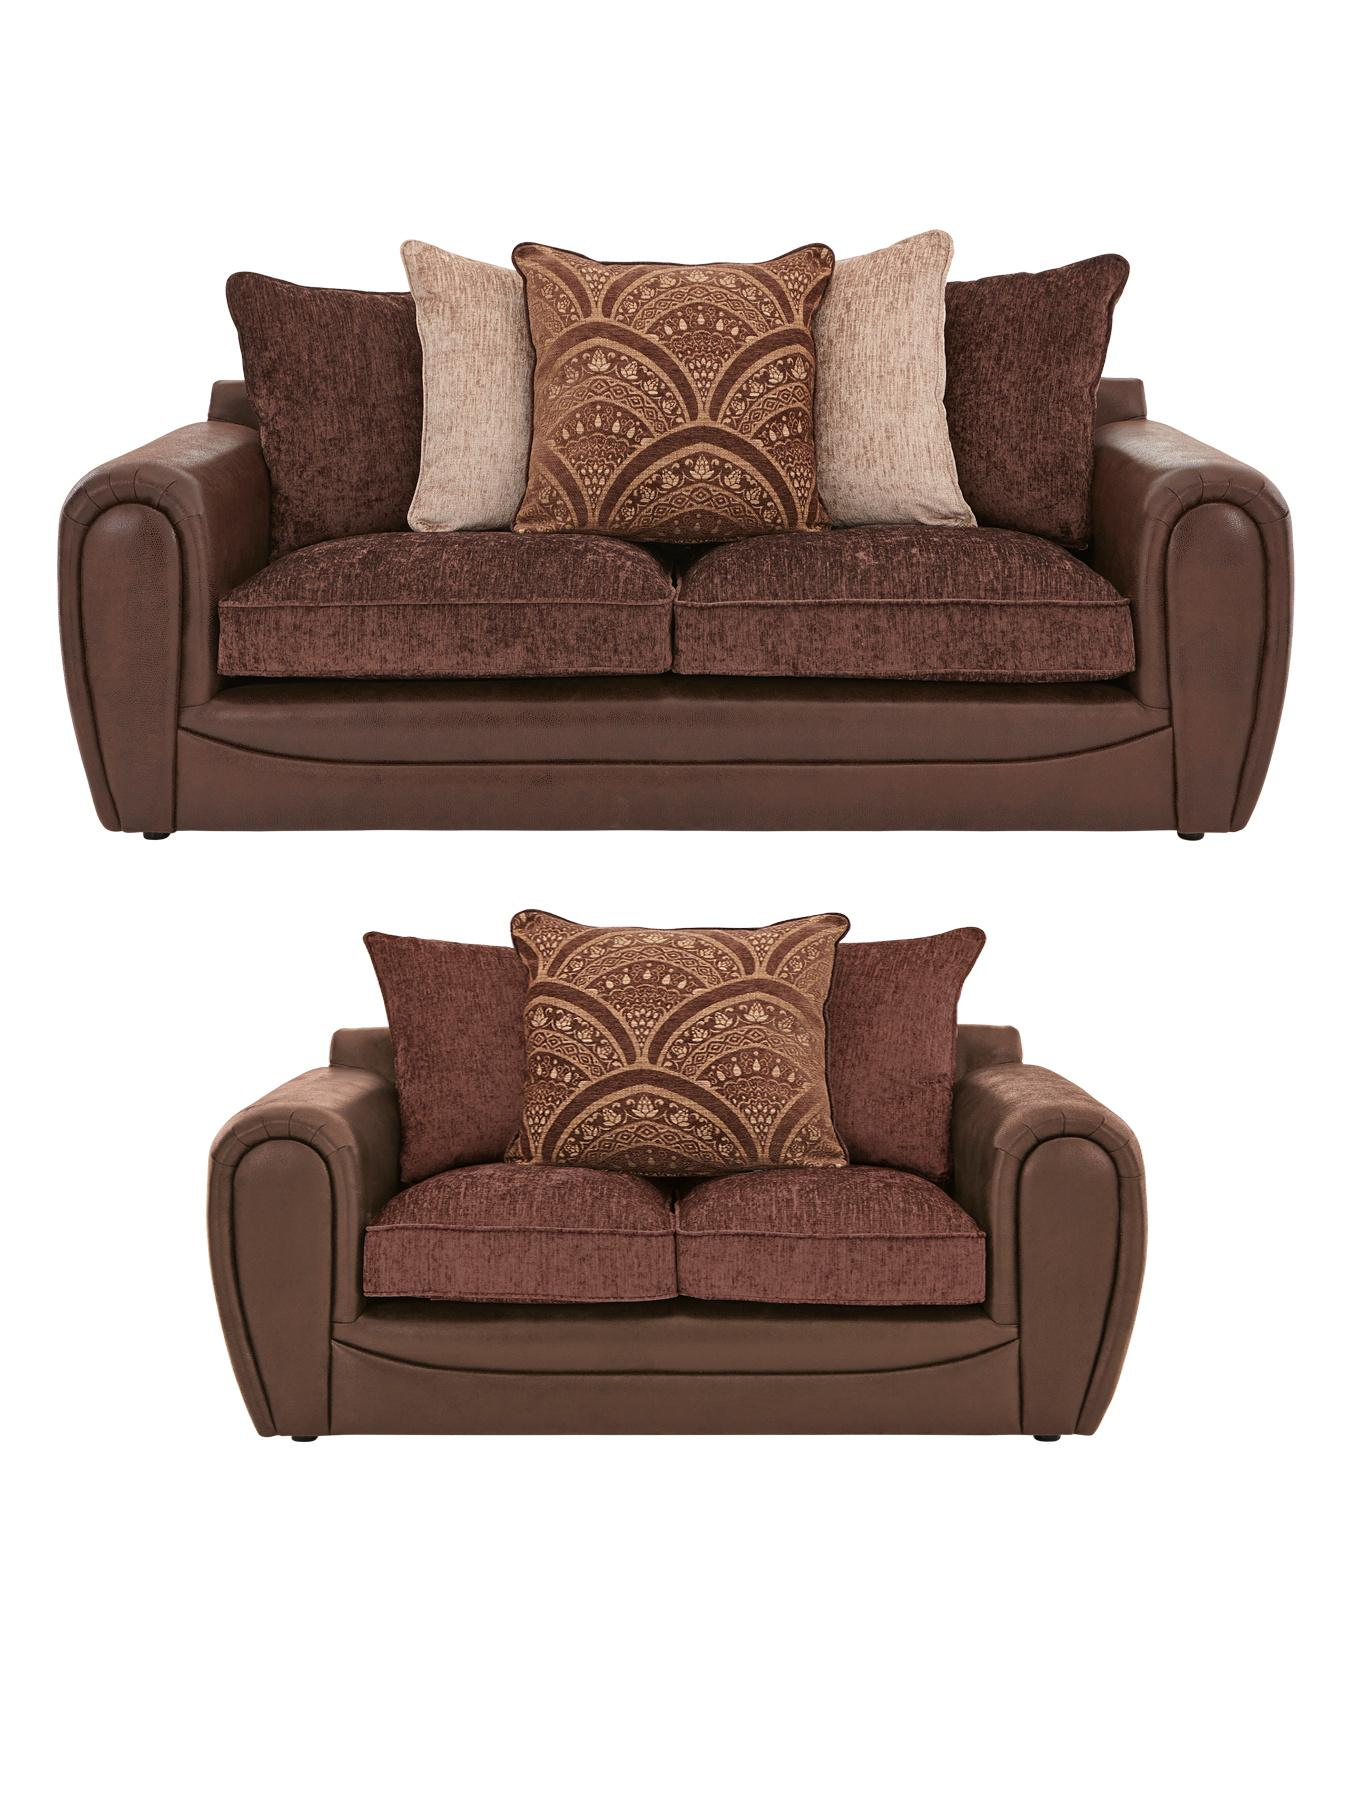 littlewoods gatsby 3 seater plus 2 seater sofa set buy and save grey black chocolate. Black Bedroom Furniture Sets. Home Design Ideas